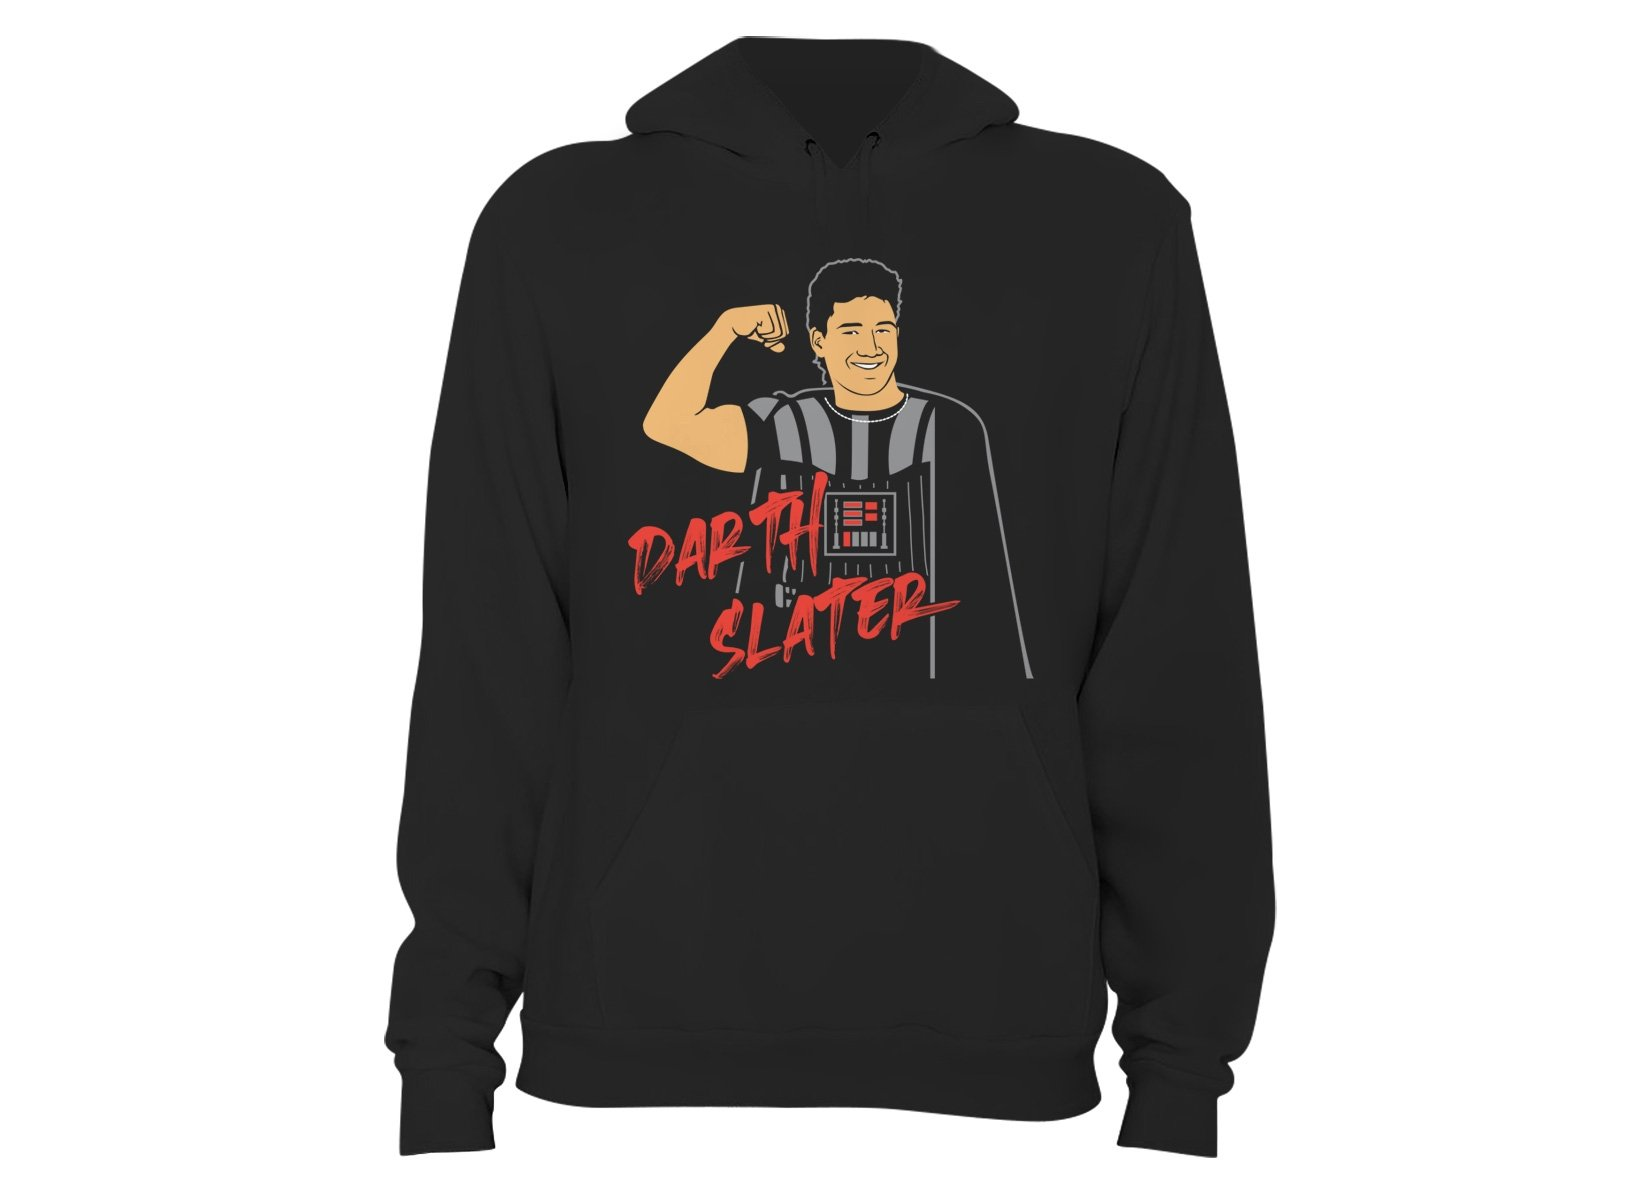 Darth Slater on Hoodie